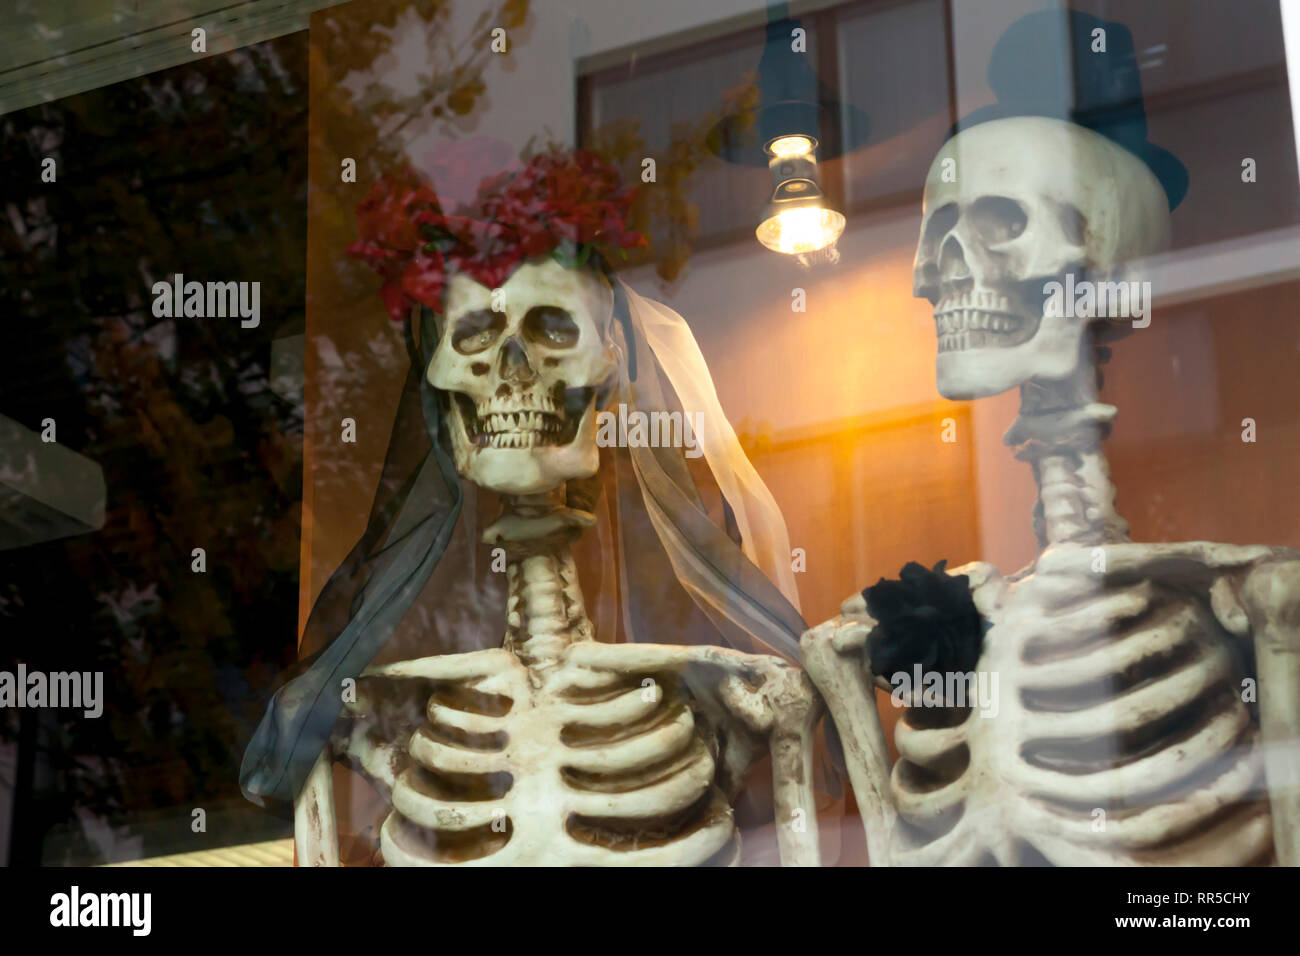 Two dressed up for honeymooners skeletons on the window. - Stock Image